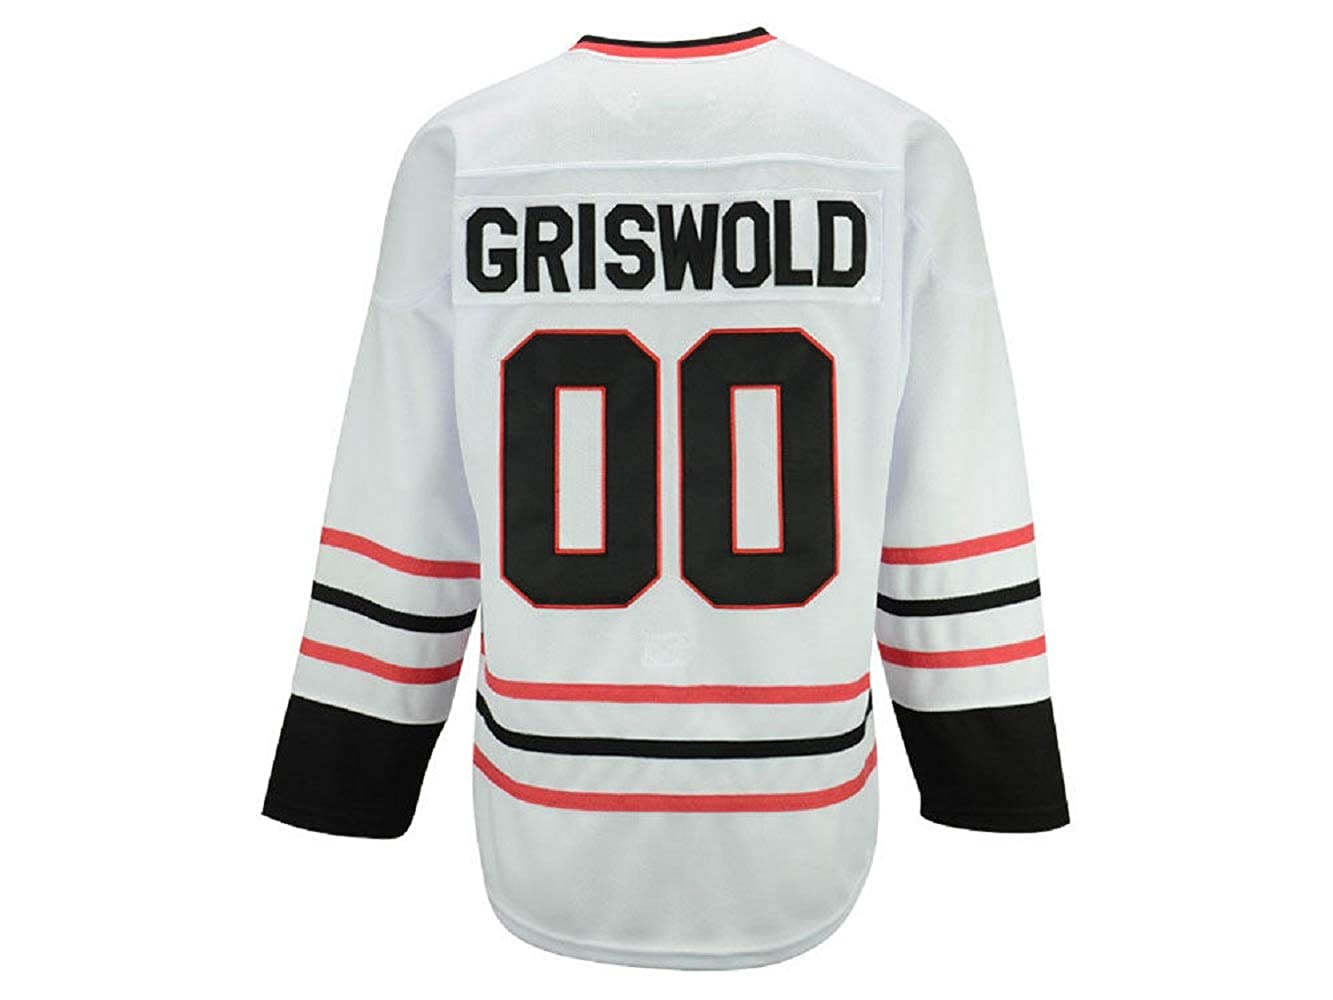 quality design 2d319 71e06 Clark Griswold National Christmas Jersey Sewn Stitch Hockey Shirt New